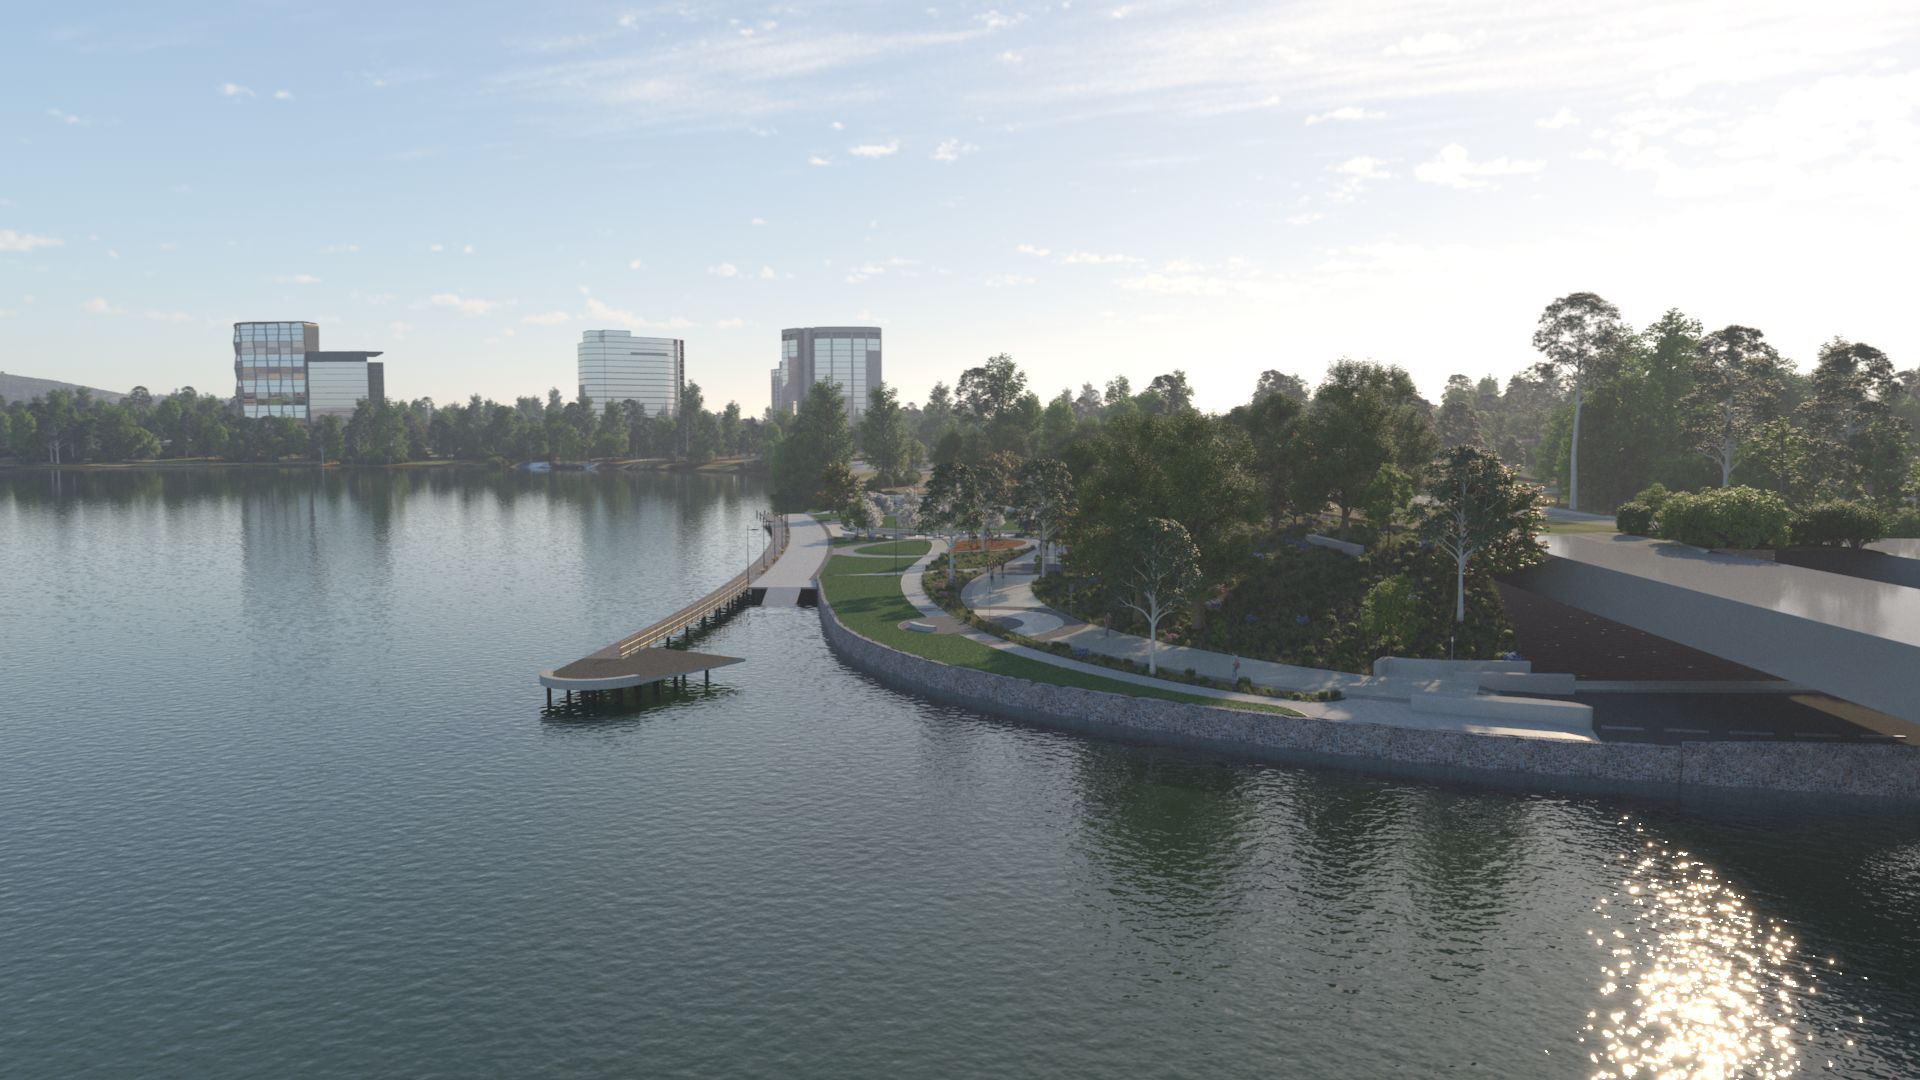 3D image of the new park from the southern bank of the lake